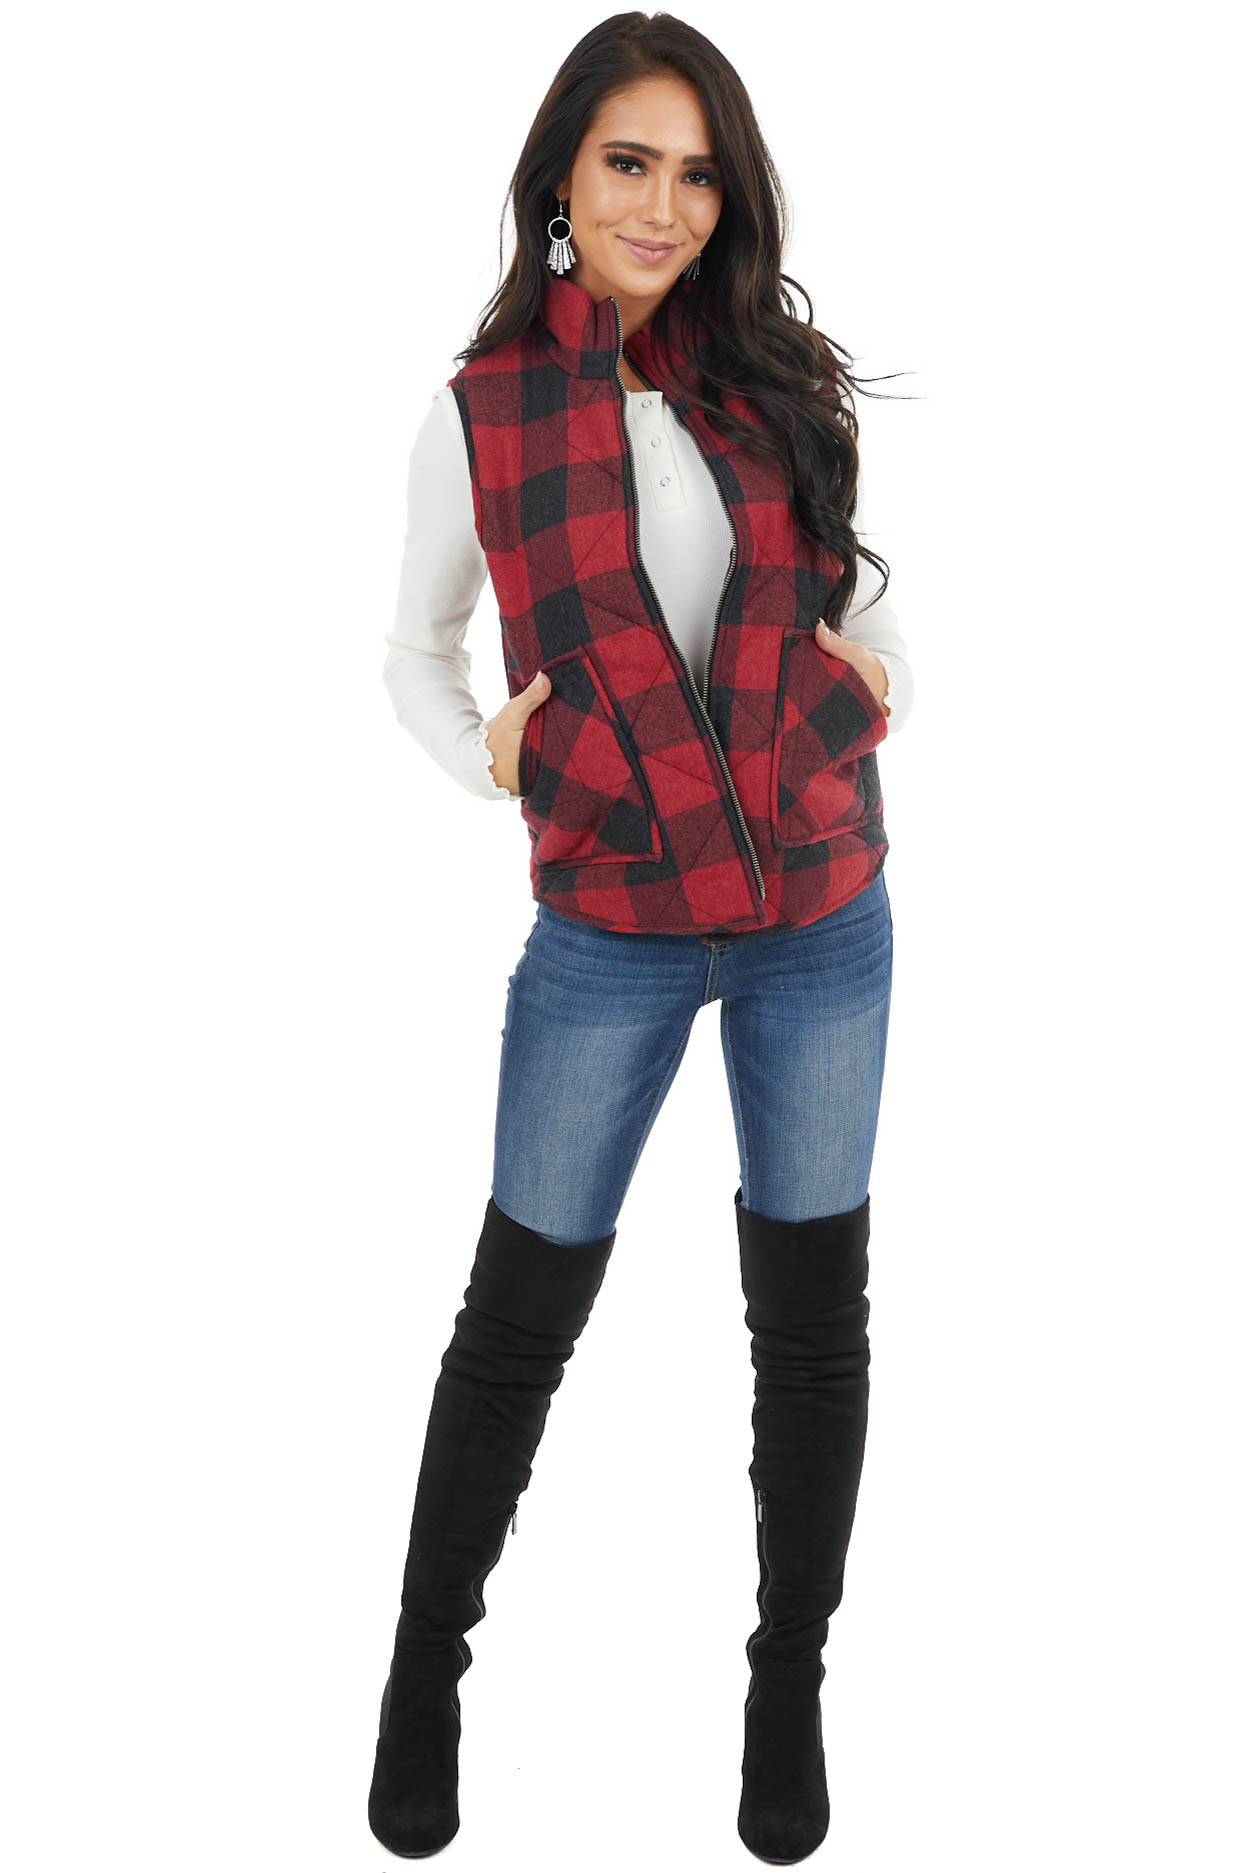 Cranberry Red Buffalo Plaid Padded Zip Up Vest with Pockets